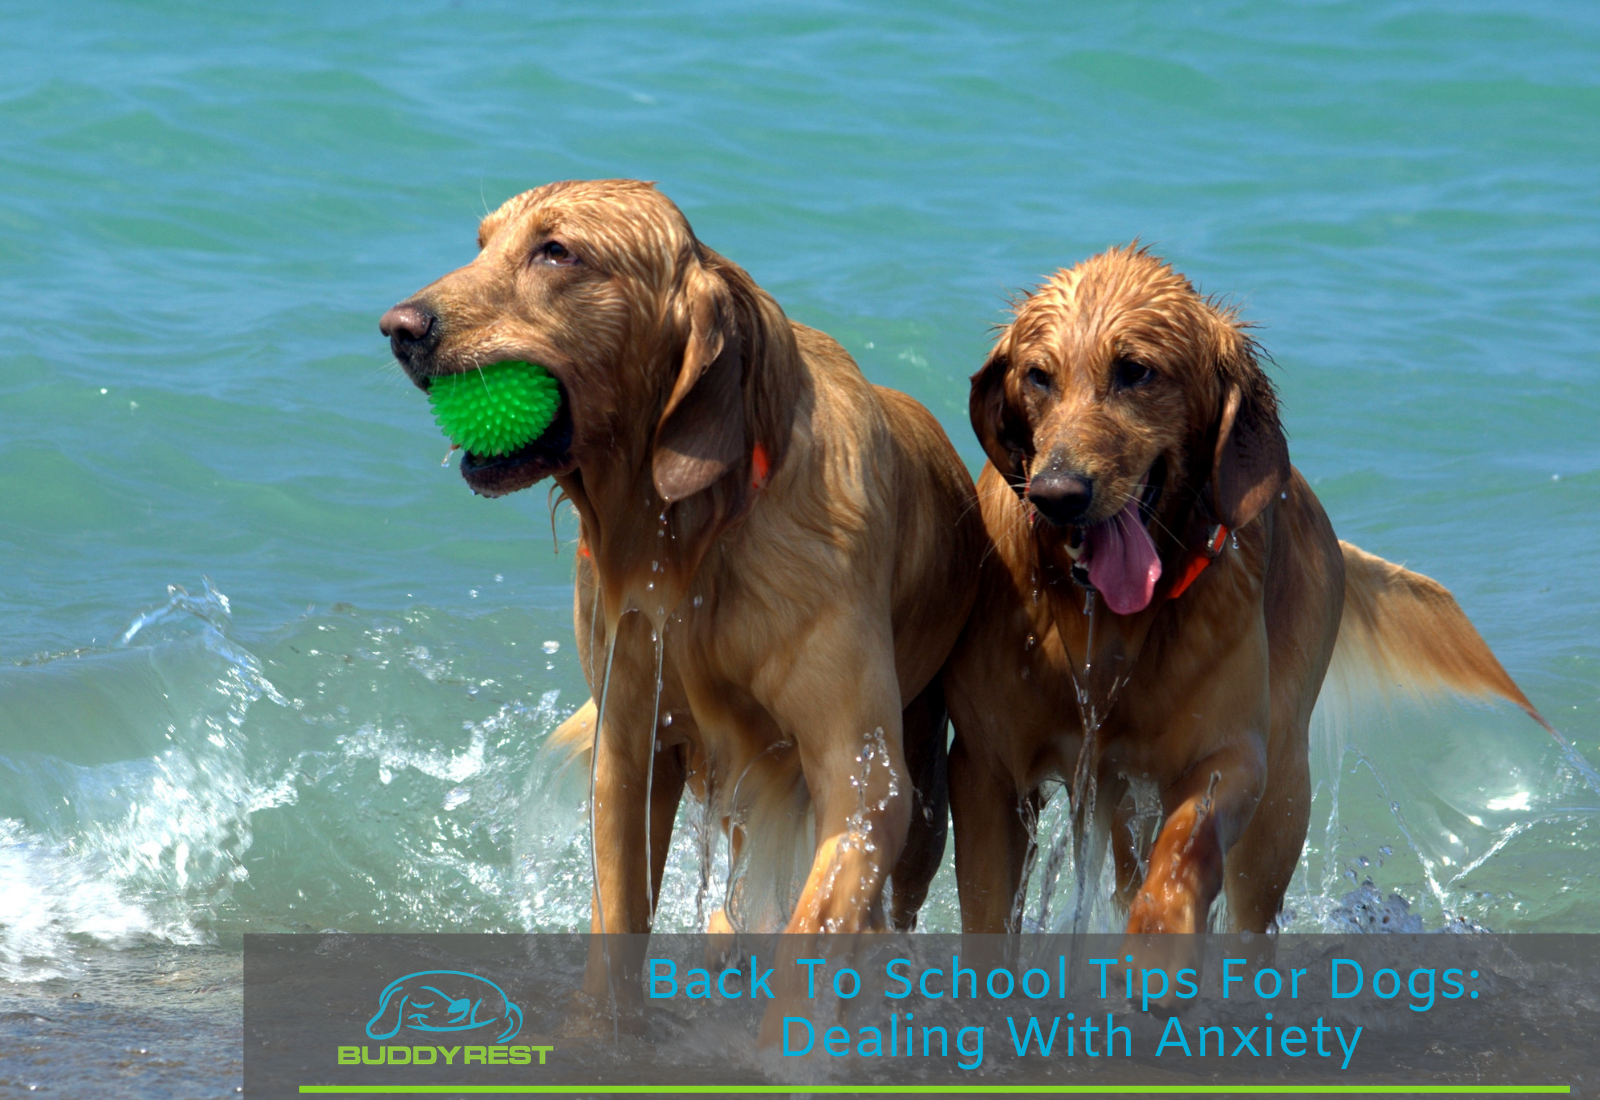 Back to school tips for dogs: Dealing with anxiety